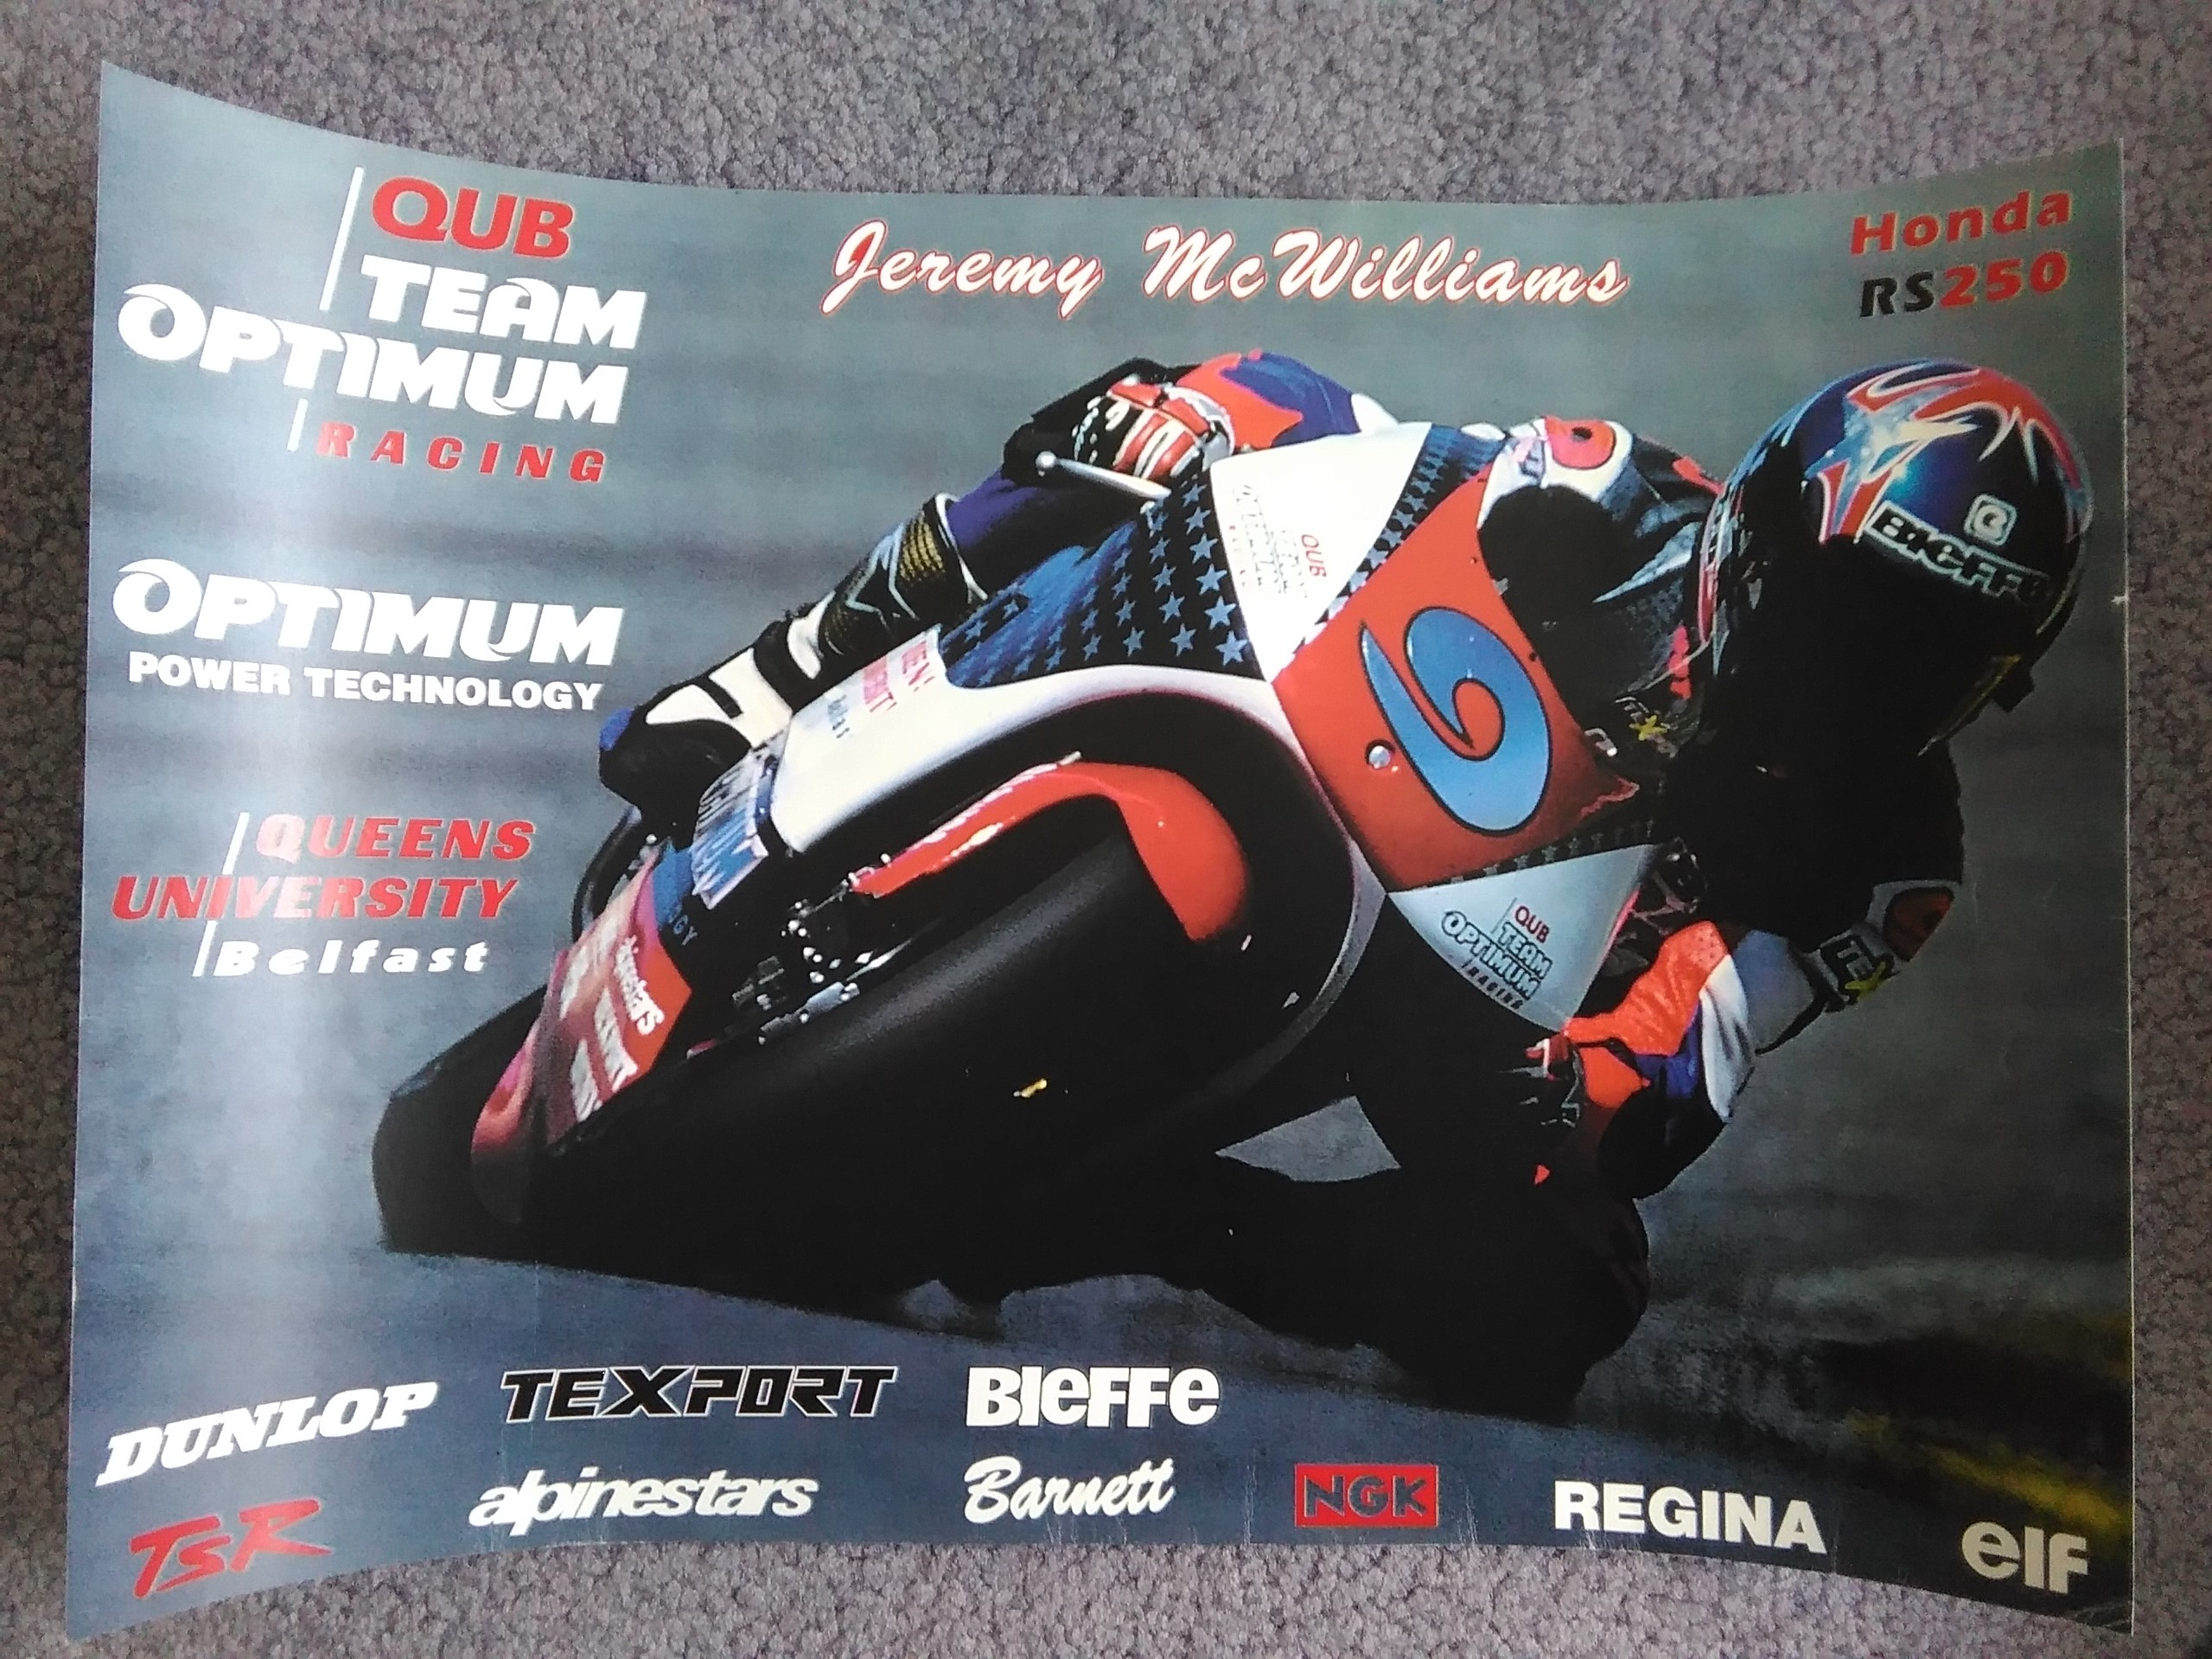 Jeremy McWilliams Team Optimum RS250 Hon